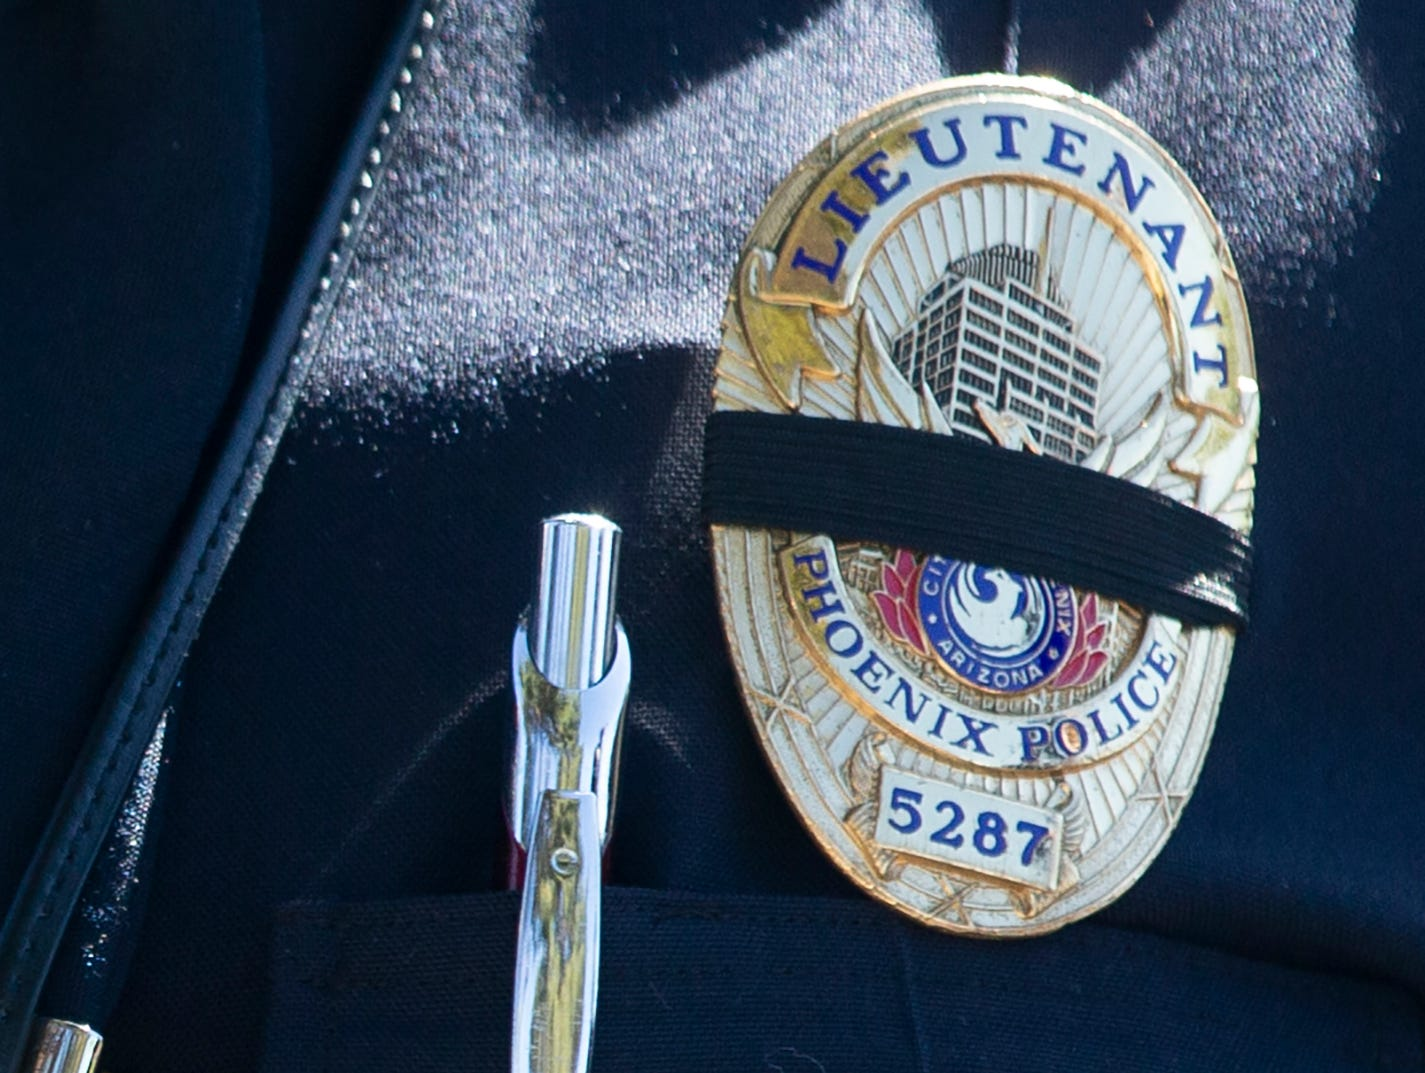 Lt. Barbara Alexander wears a black band on her badge March 22, 2019, honoring Officer Paul Rutherford, who was killed in a crash March 21.